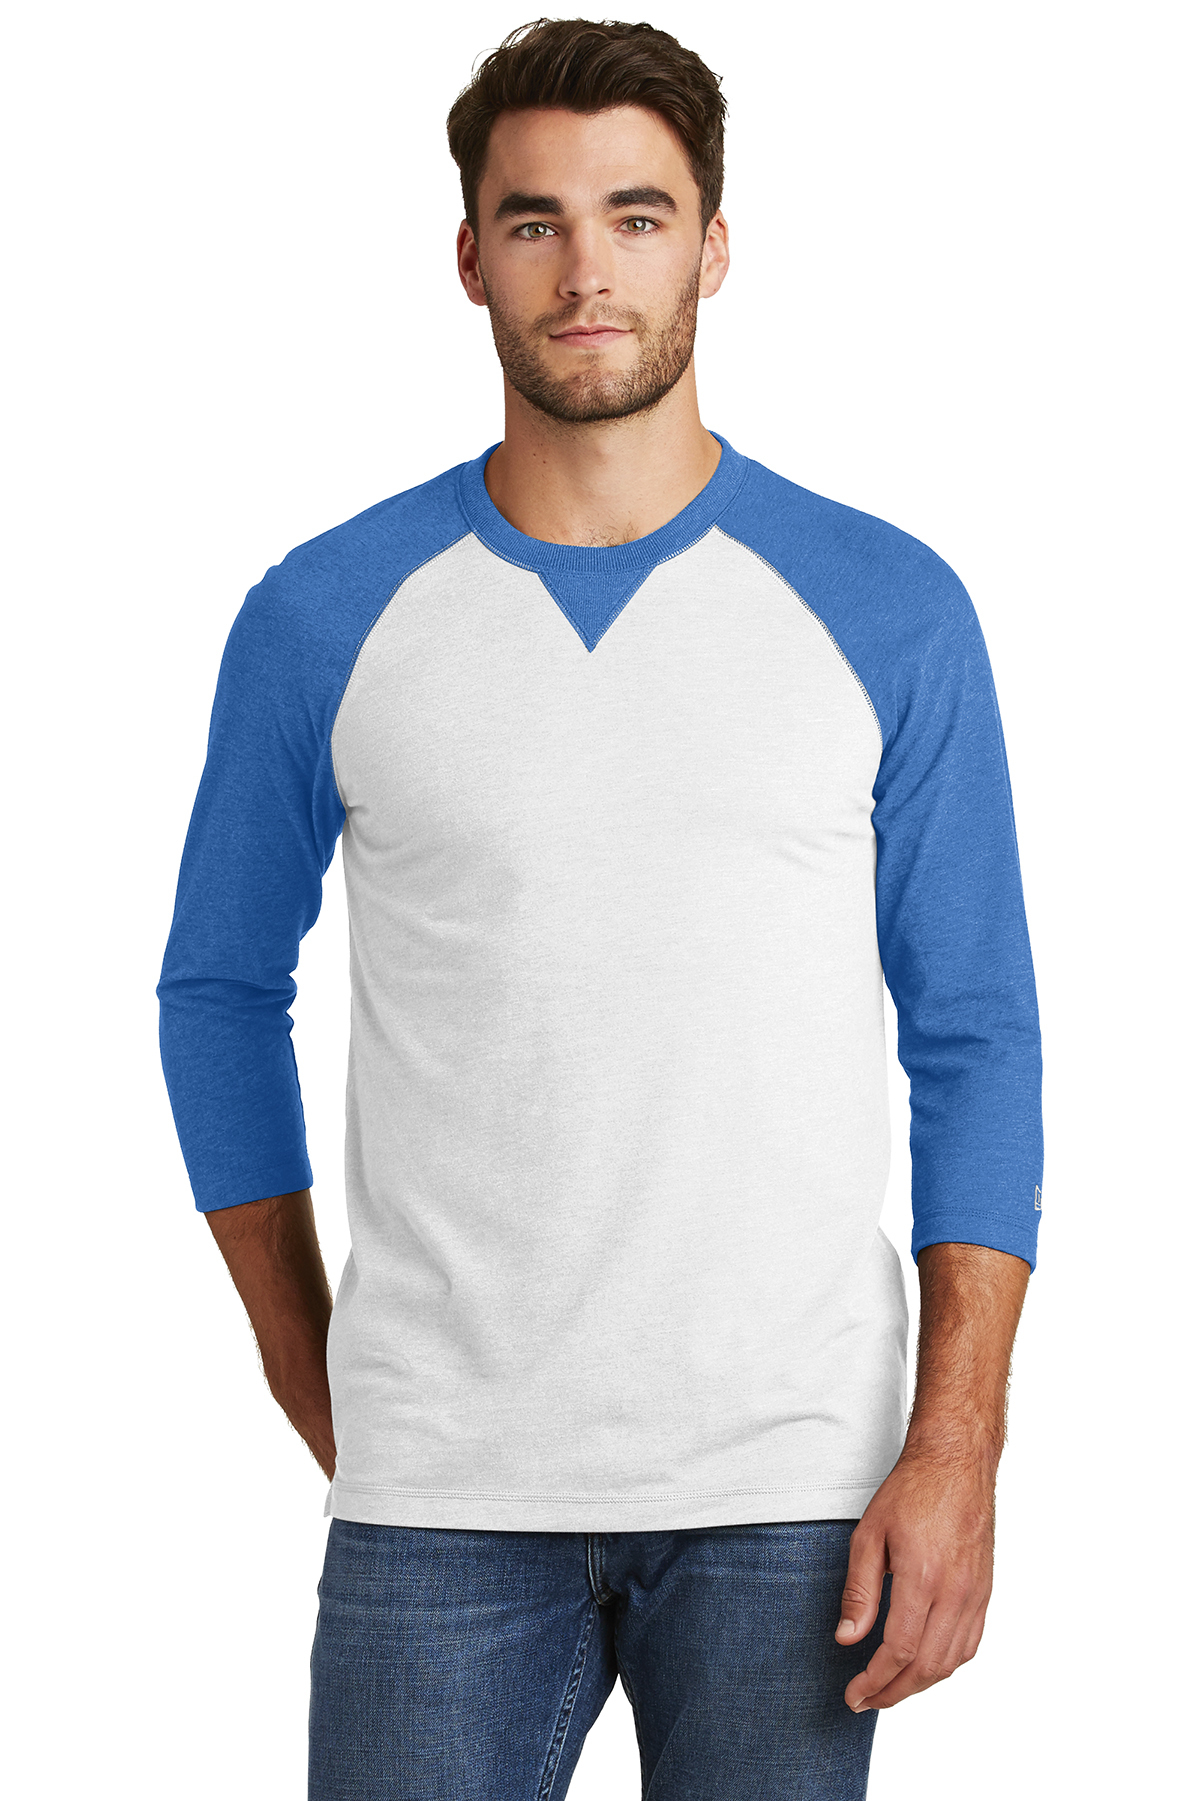 New Era NEA121 - Men's Sueded Cotton 3/4 Sleeve Baseball ...